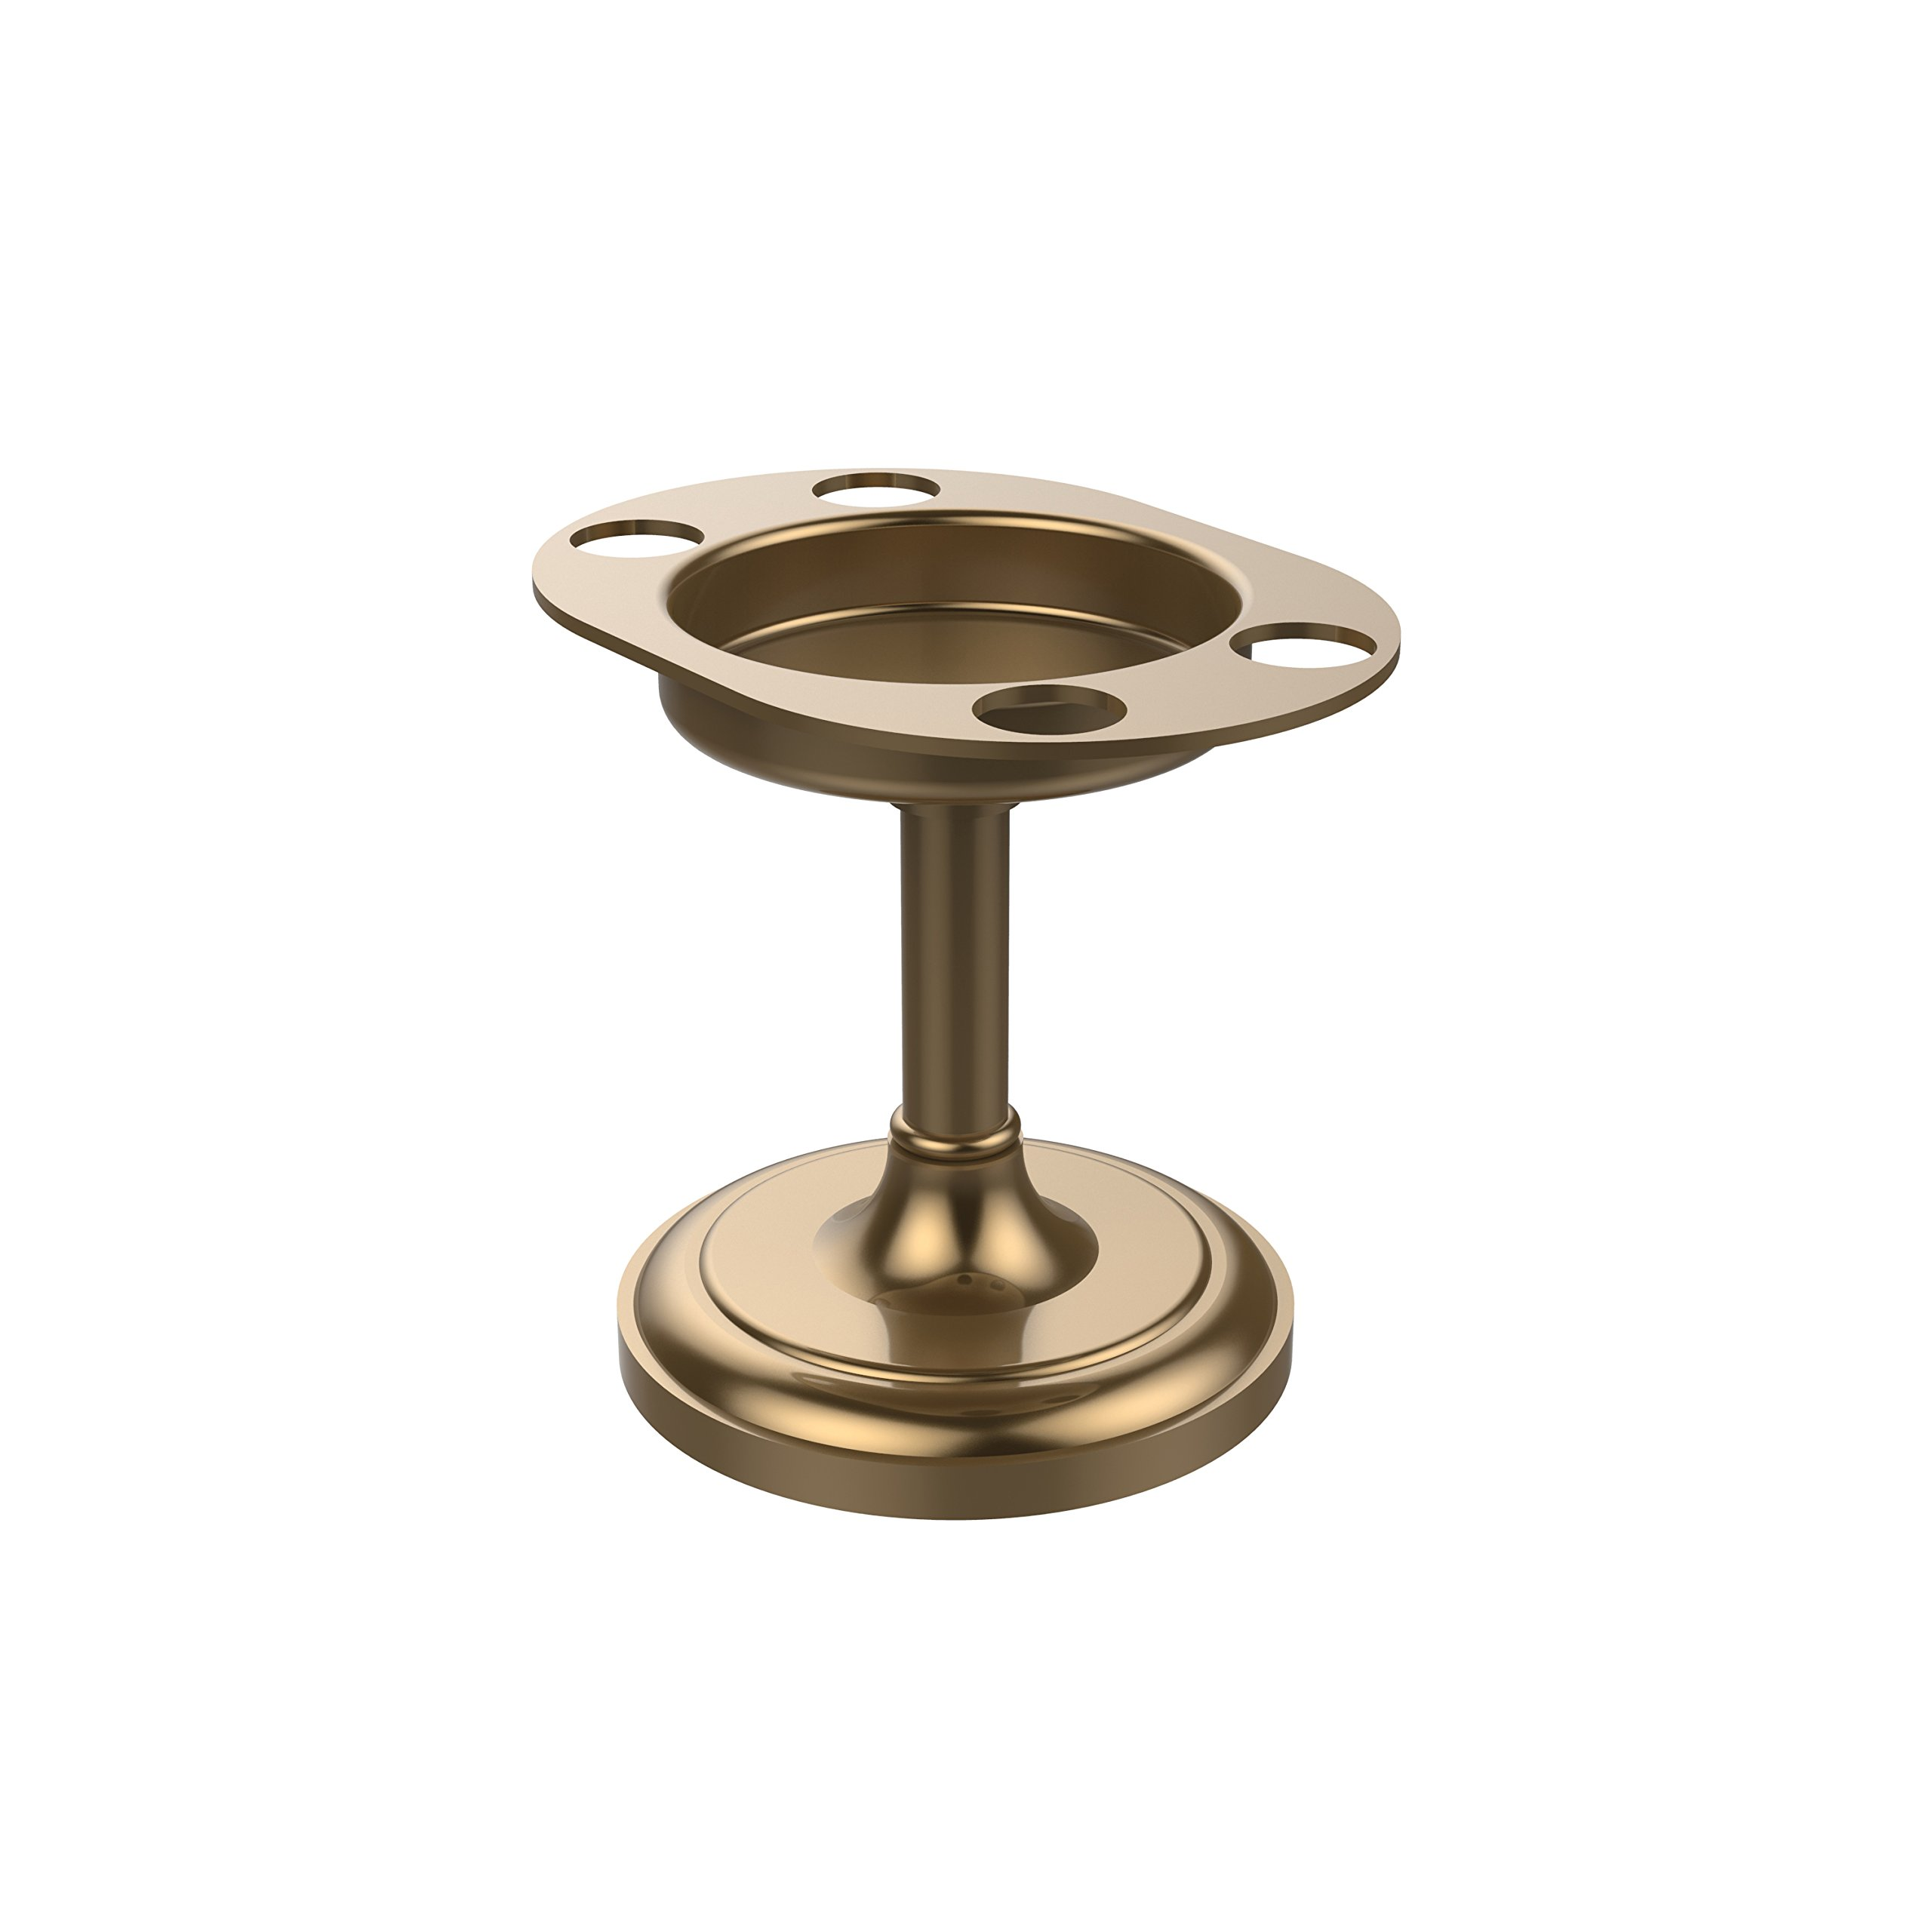 Allied Brass S-55-BBR Vanity Top Tumbler and Toothbrush Holder, Brushed Bronze